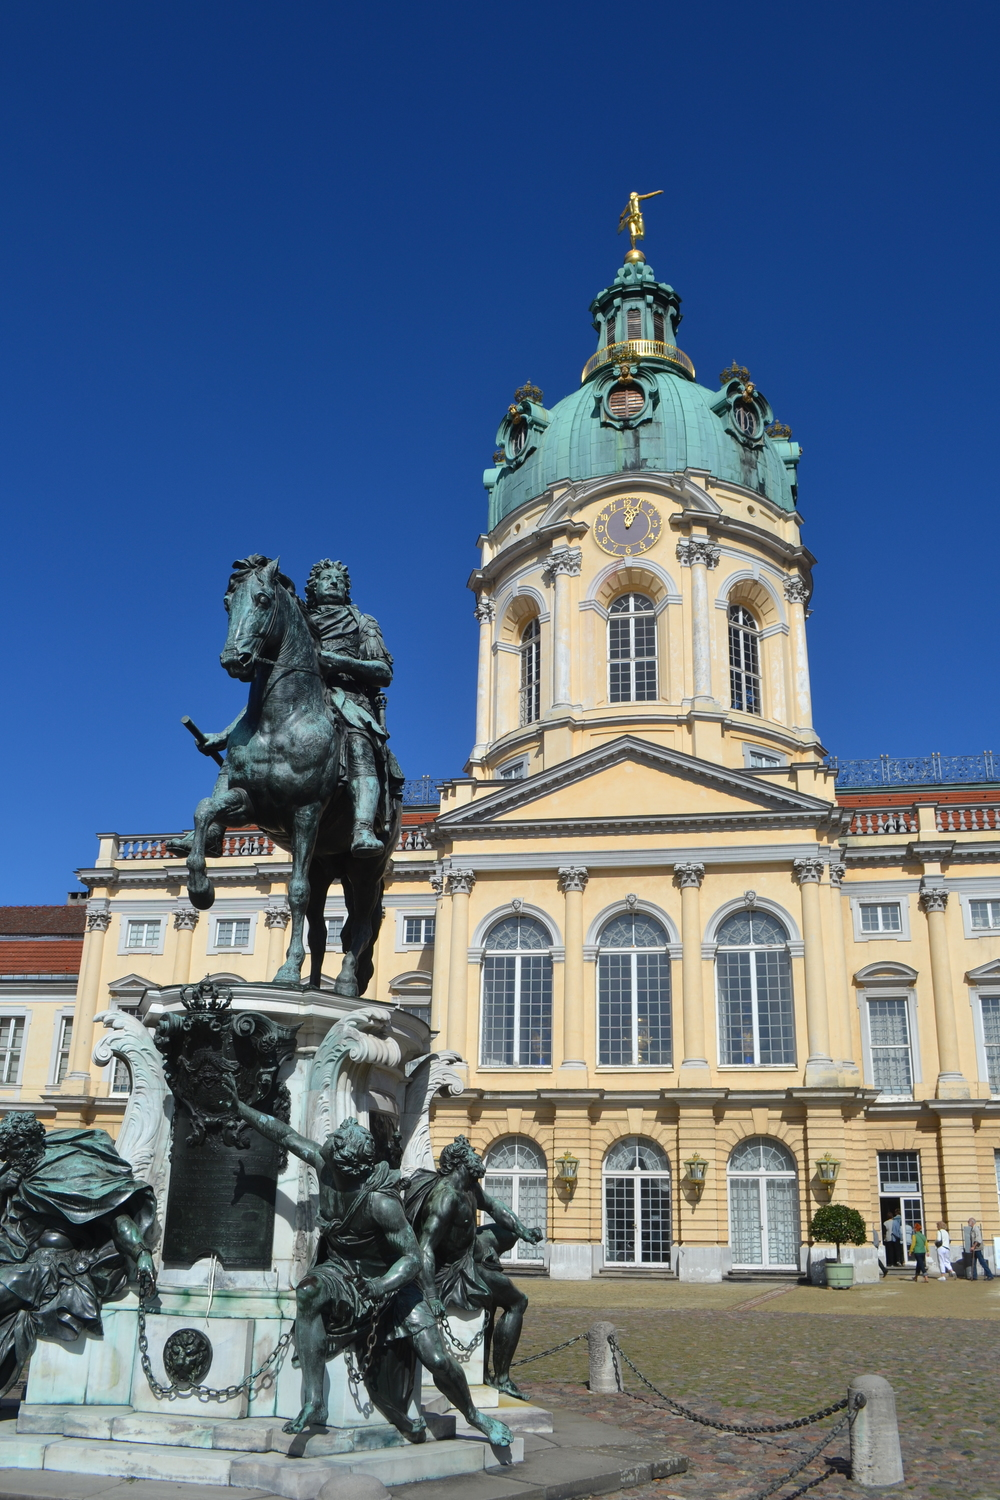 Courtyard, Schloss Charlottenburg